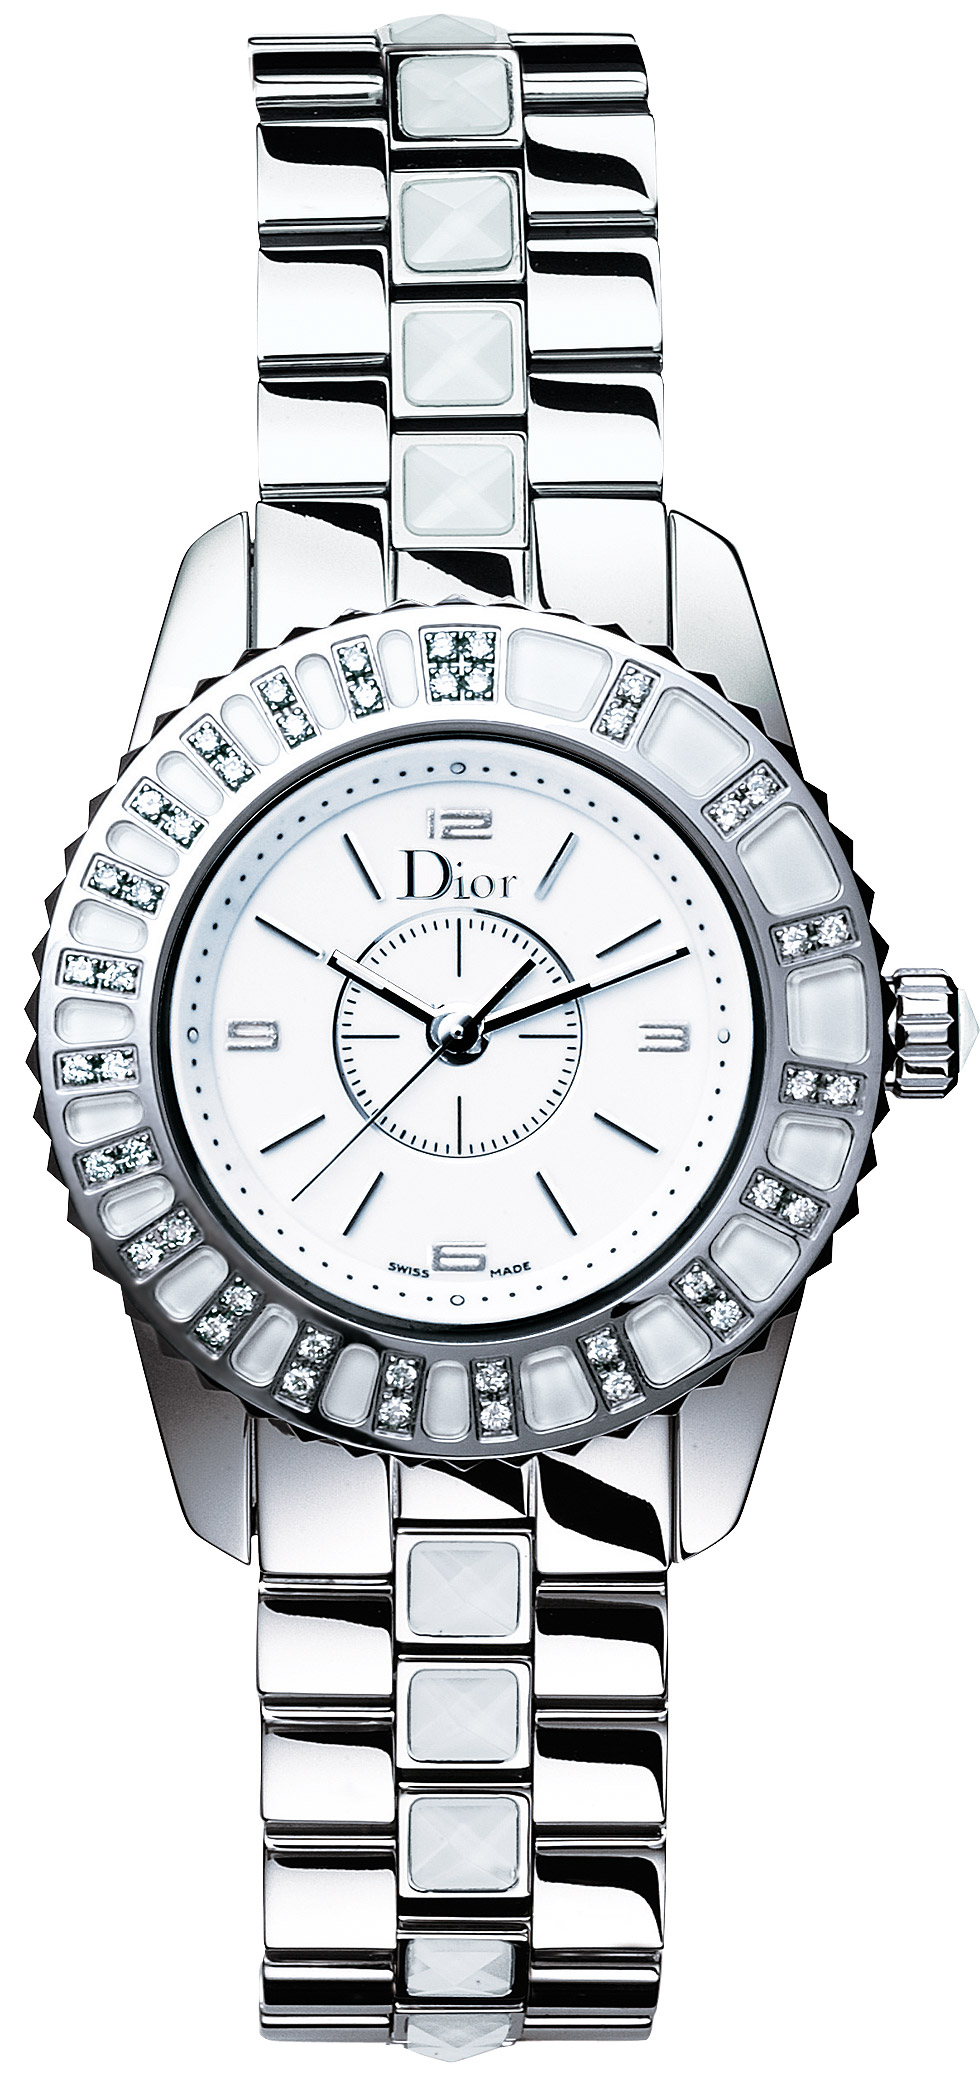 Christian dior christal ladies watch model cd112113m001 for Christian dior watches